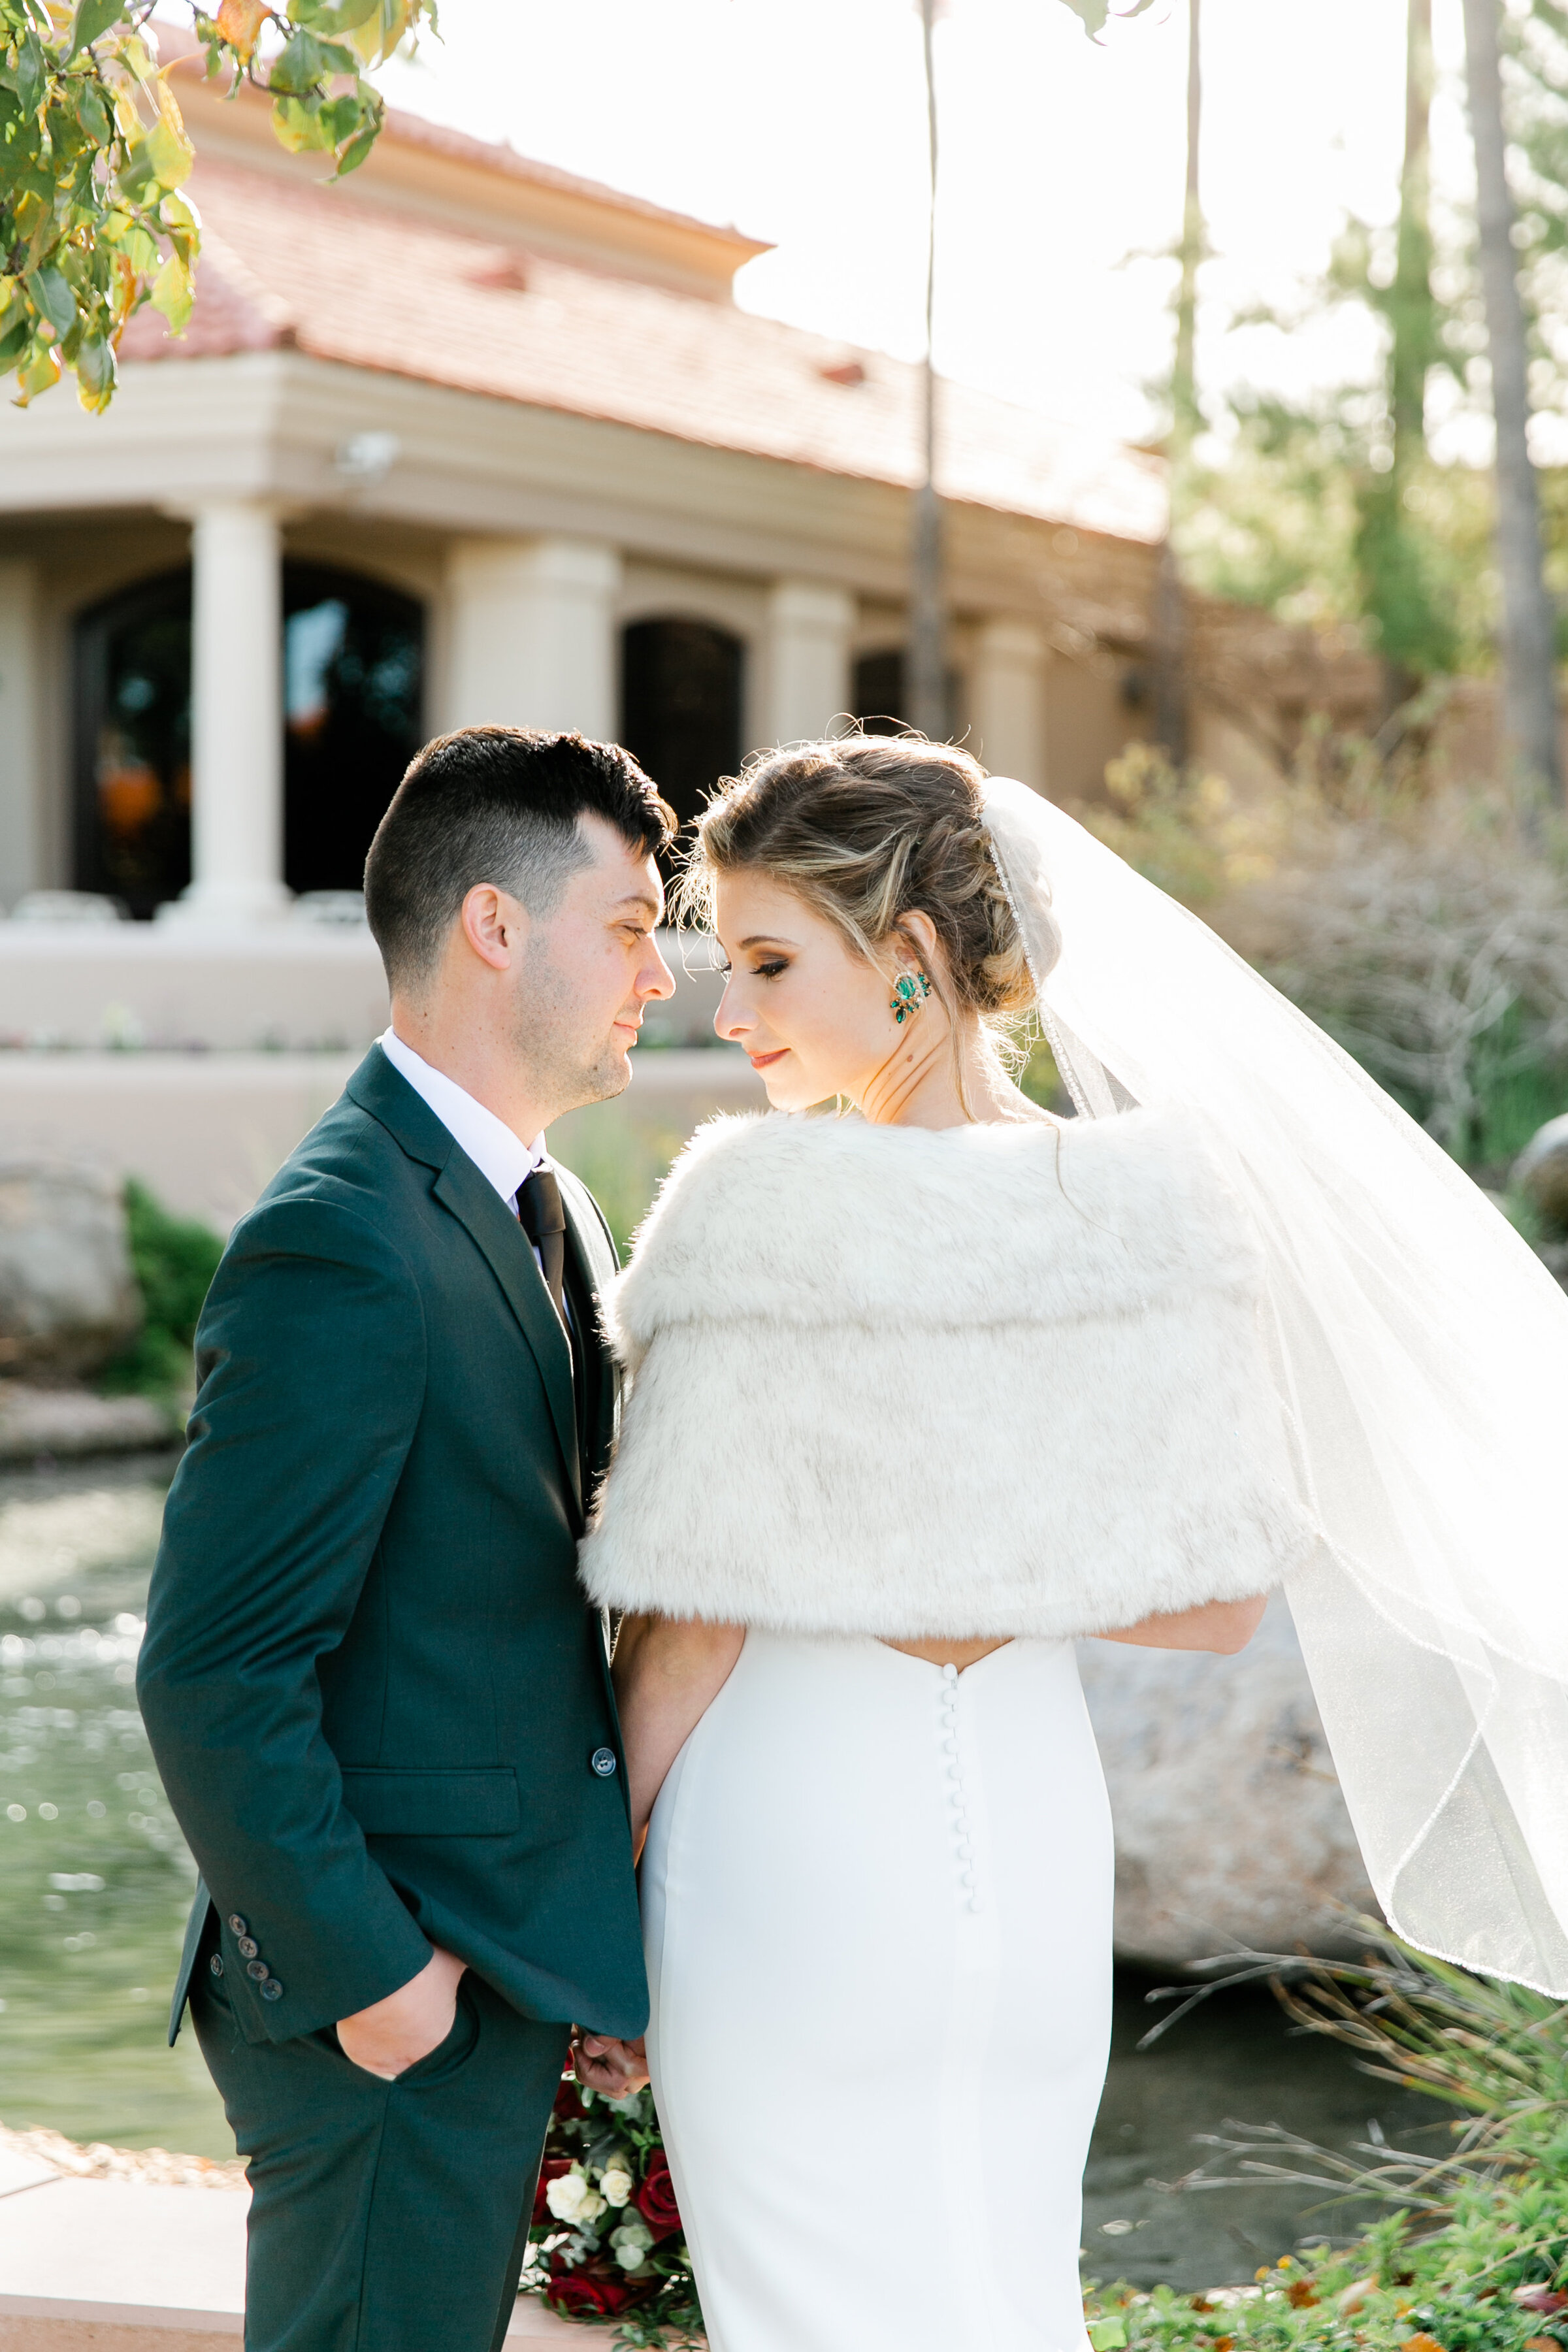 Karlie Colleen Photography - Gilbert Arizona Wedding - Val Vista Lakes - Brynne & Josh-471